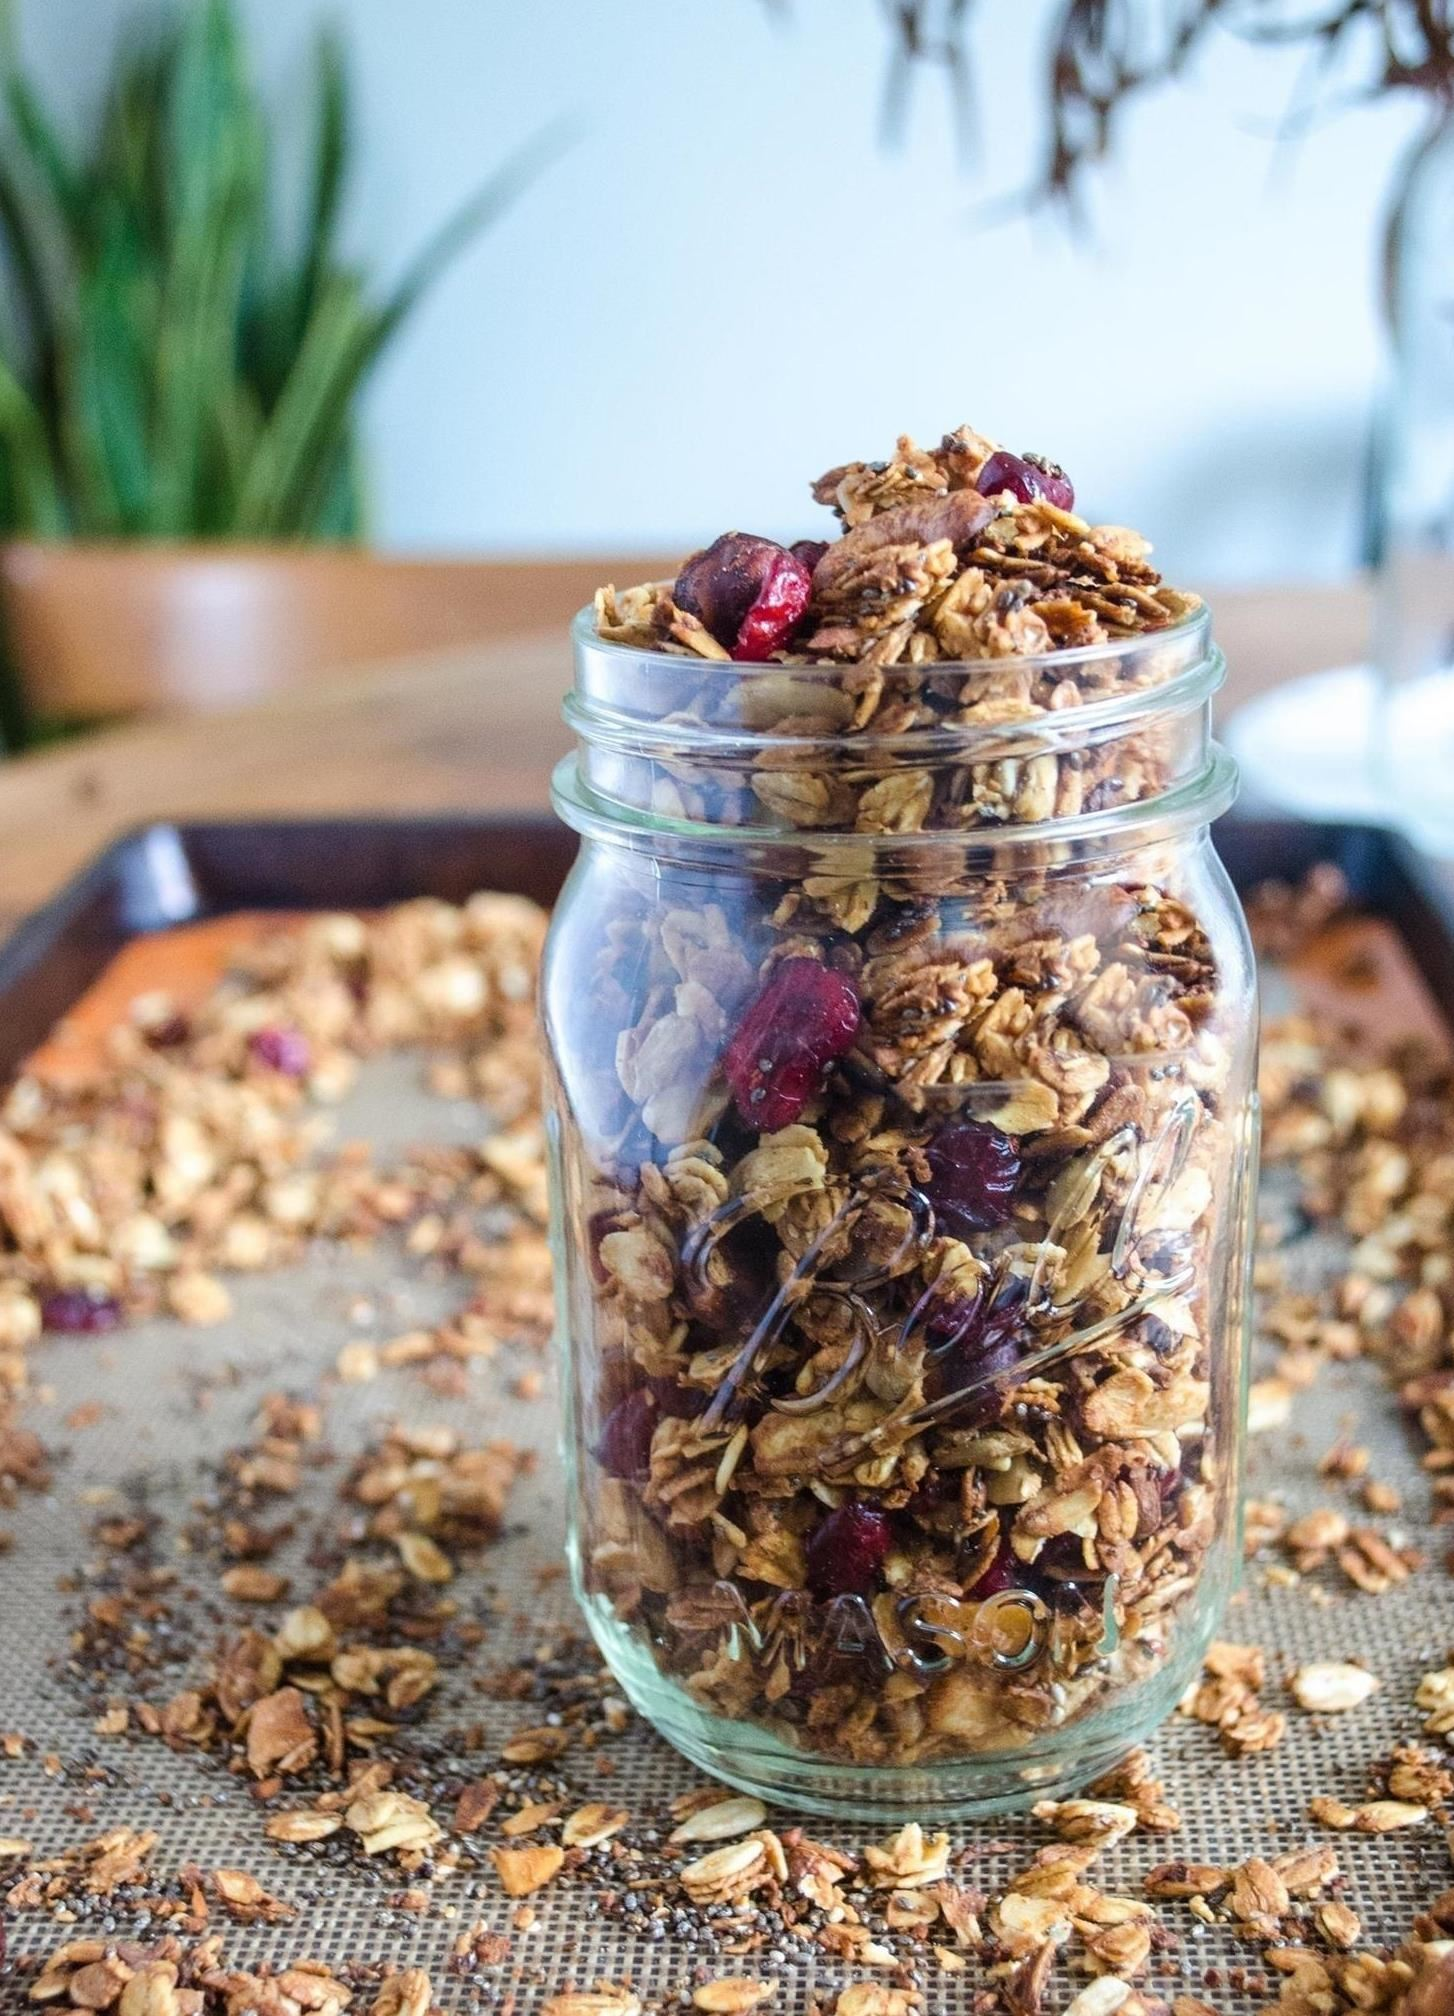 You Don't Need a Recipe to Make Delicious Granola